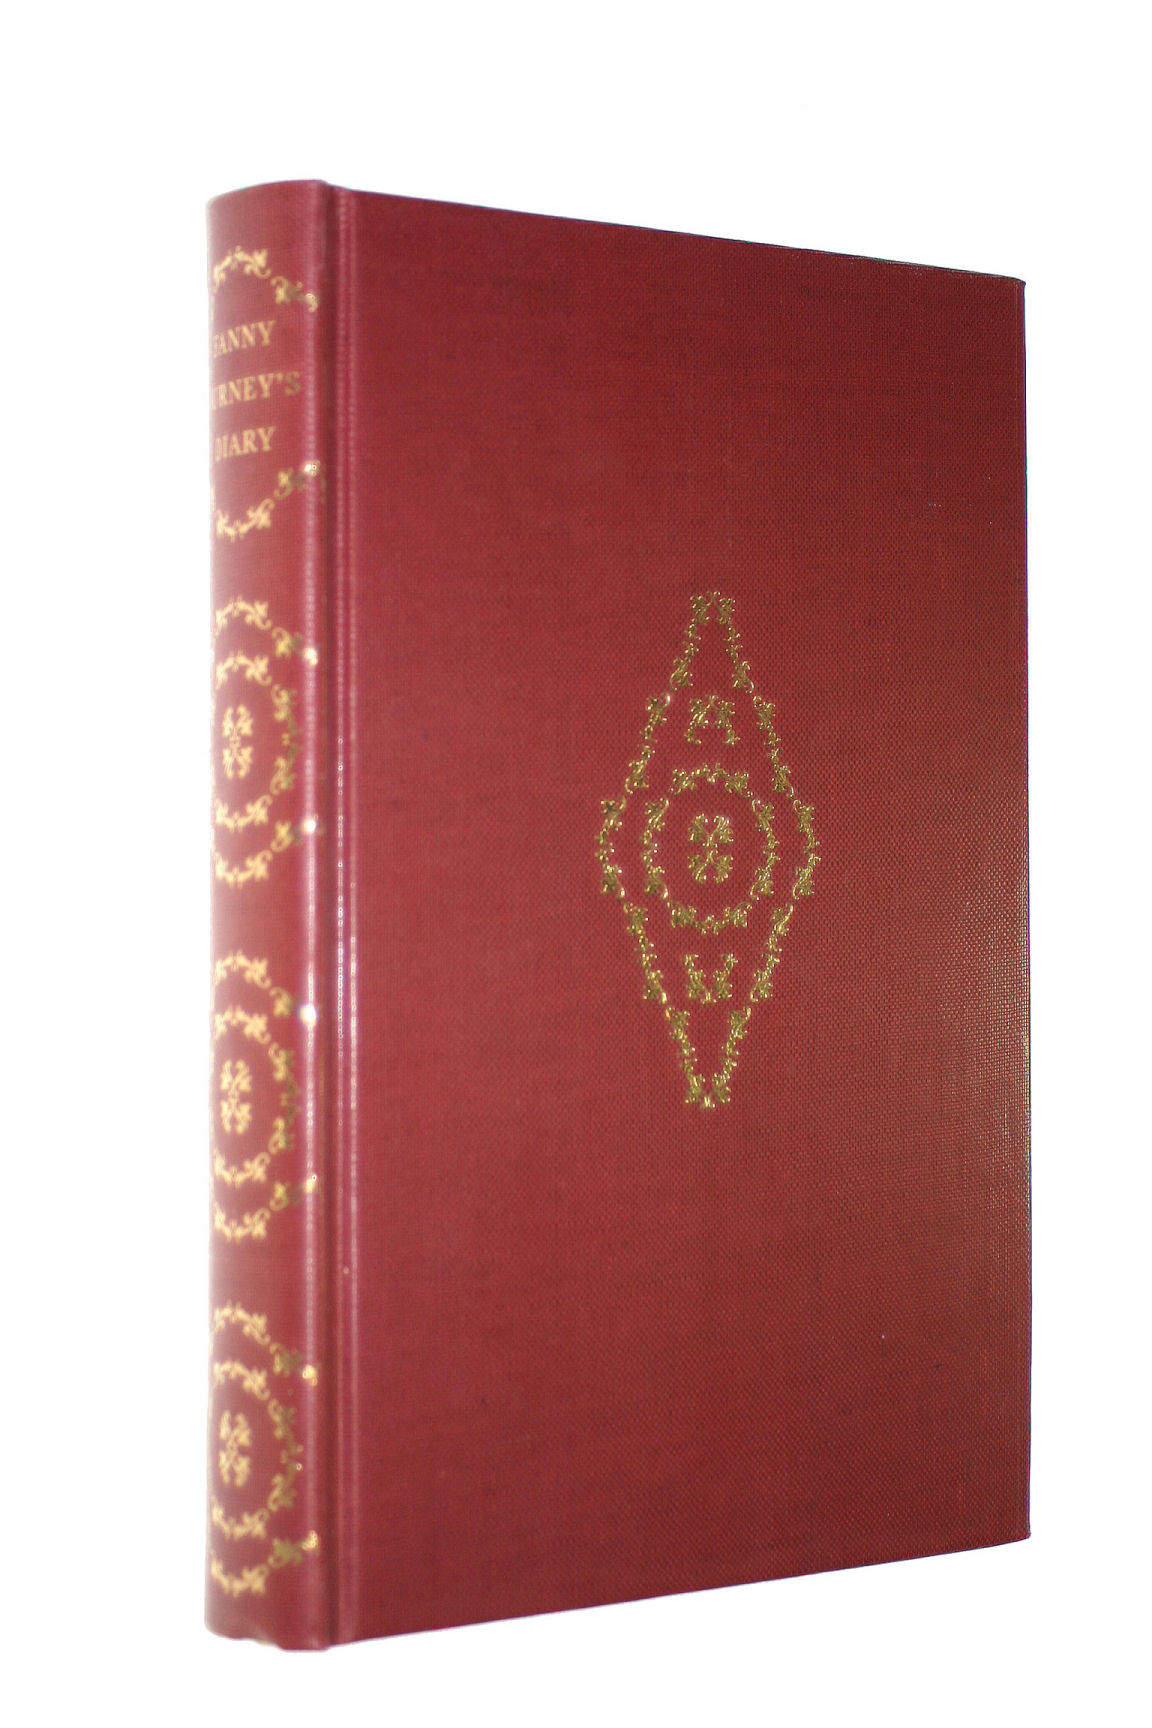 Image for Fanny Burney's diary: A selection from the diary and letters (Folio Society)